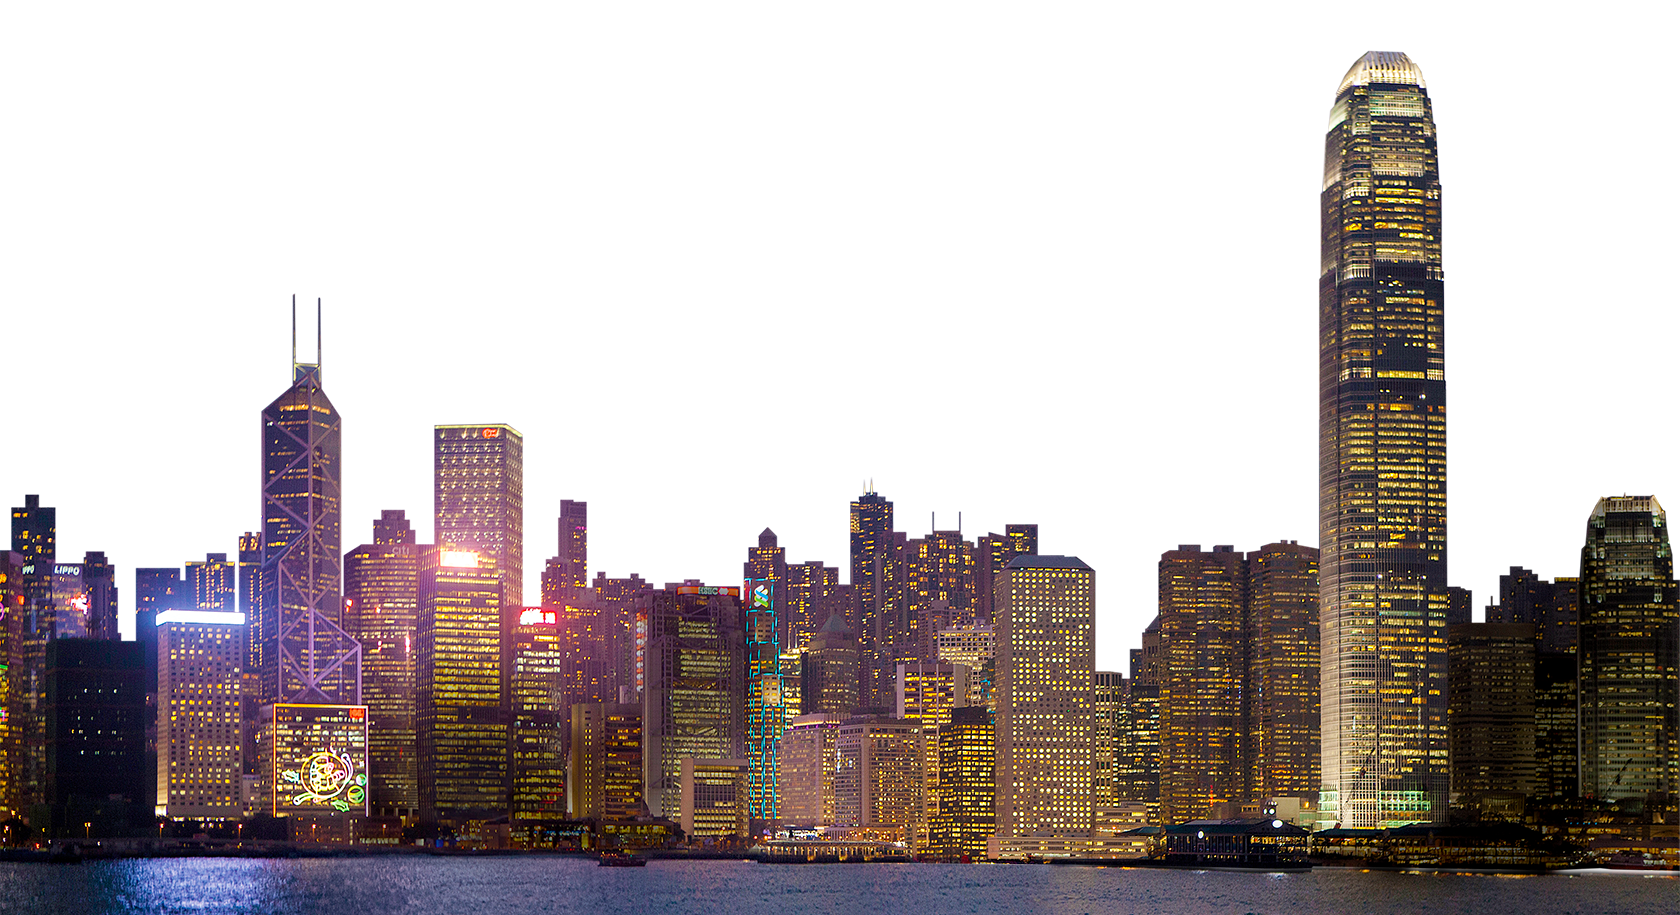 City At Night Skyline PNG Image